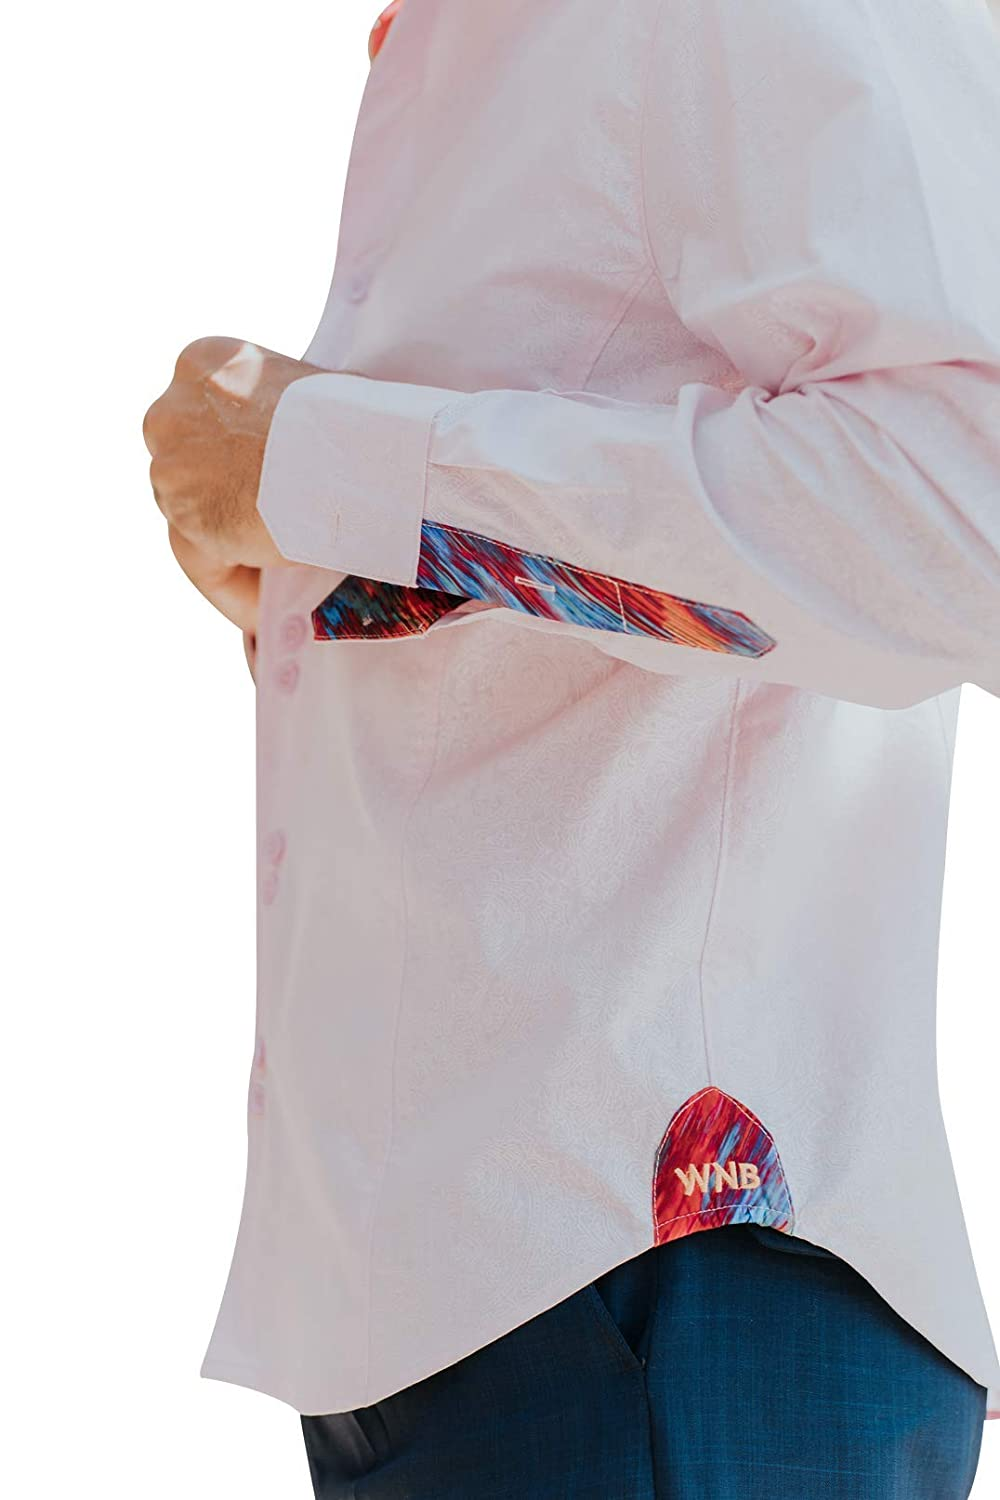 Ladys Red Stripe Jumpsuit WNB Designs Mens Palm Beach Shirt with Couples Matching Outfits Set Available